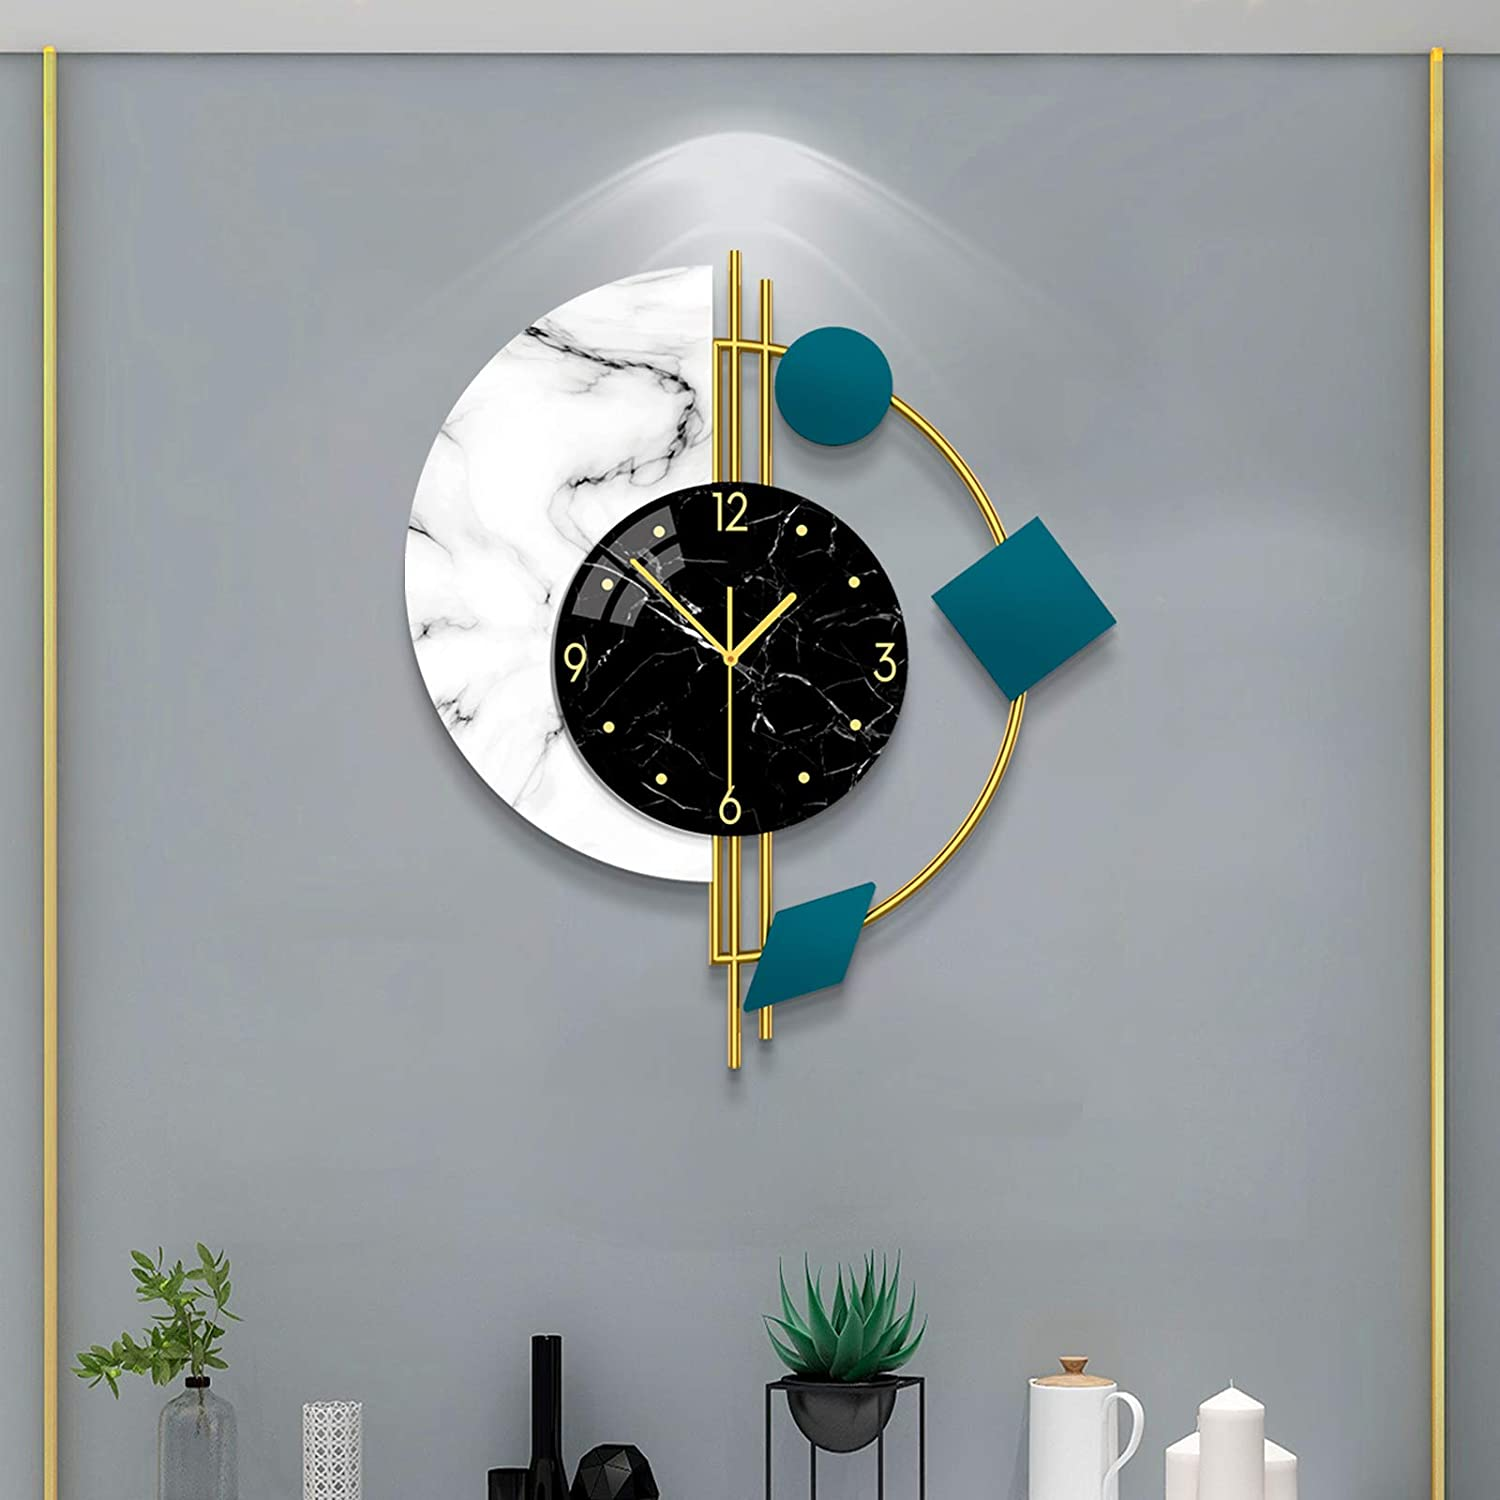 YIJIDECOR Large Wall Clocks for Living Room Decor Modern Silent Wall Clocks Battery Operated Non-Ticking for Bedroom Office Kitchen Home Metal Glass Decoration Wall Watch Clock Quartz for Indoor House